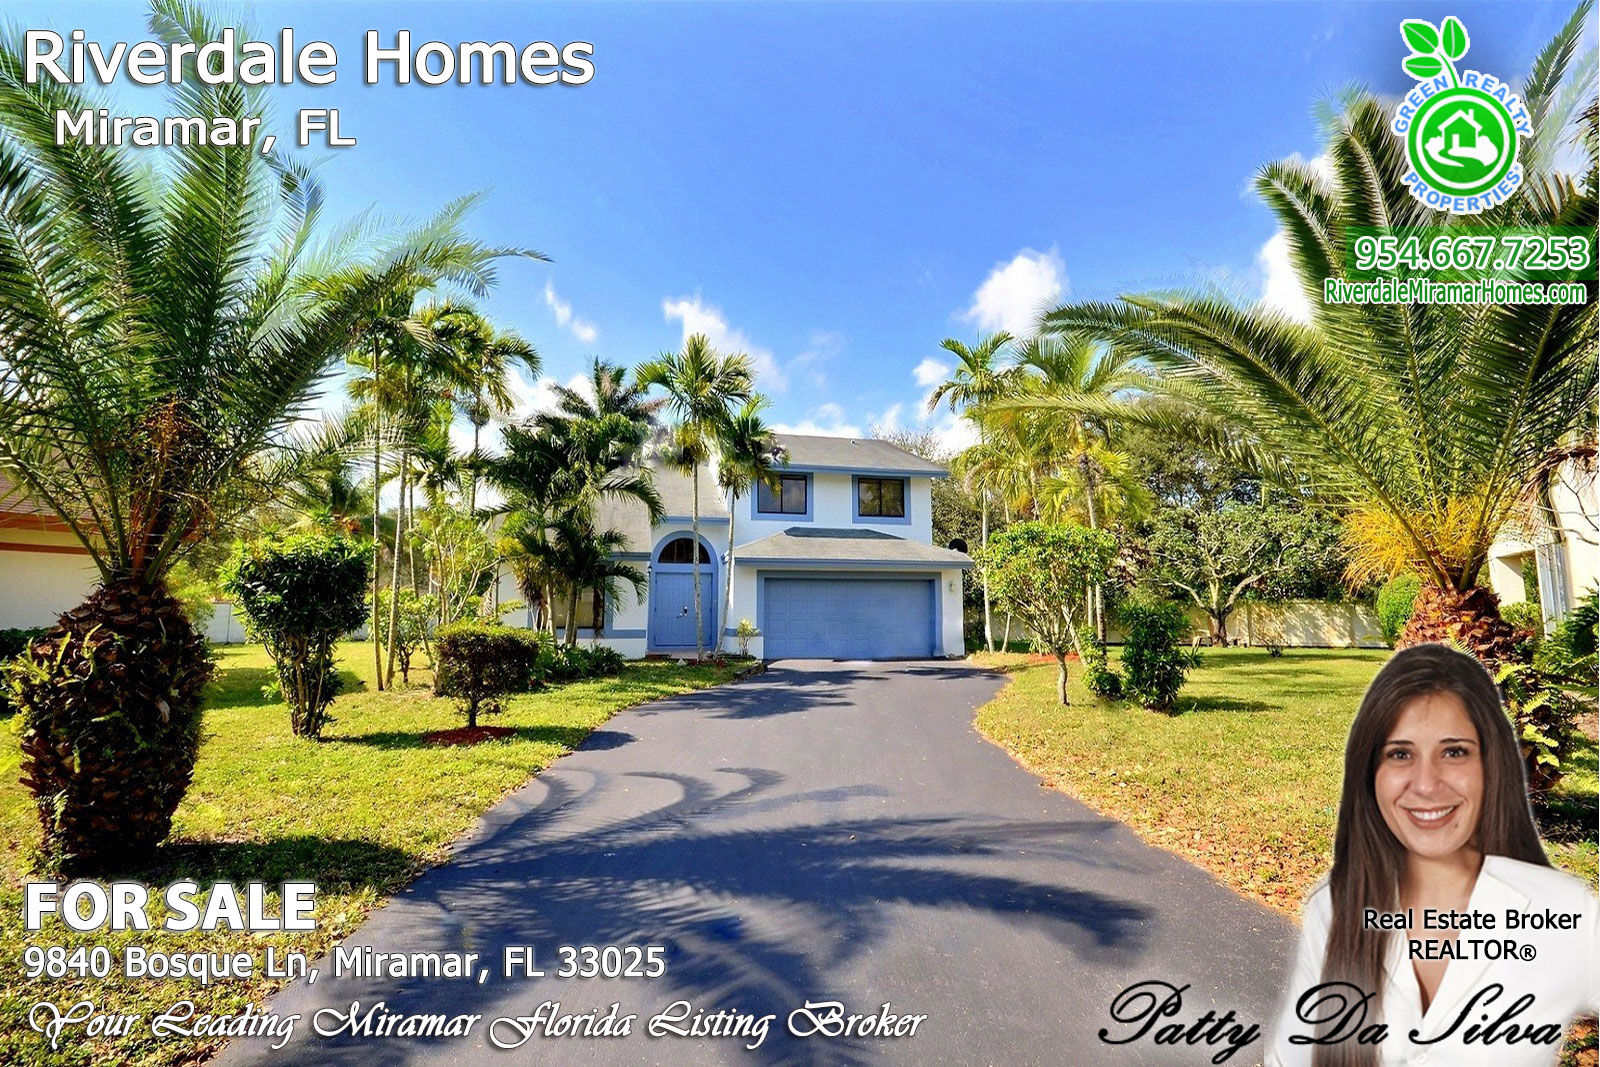 Riverdale-Miramar-listing-broker-Patty-Da-Silva-green-realty-properties